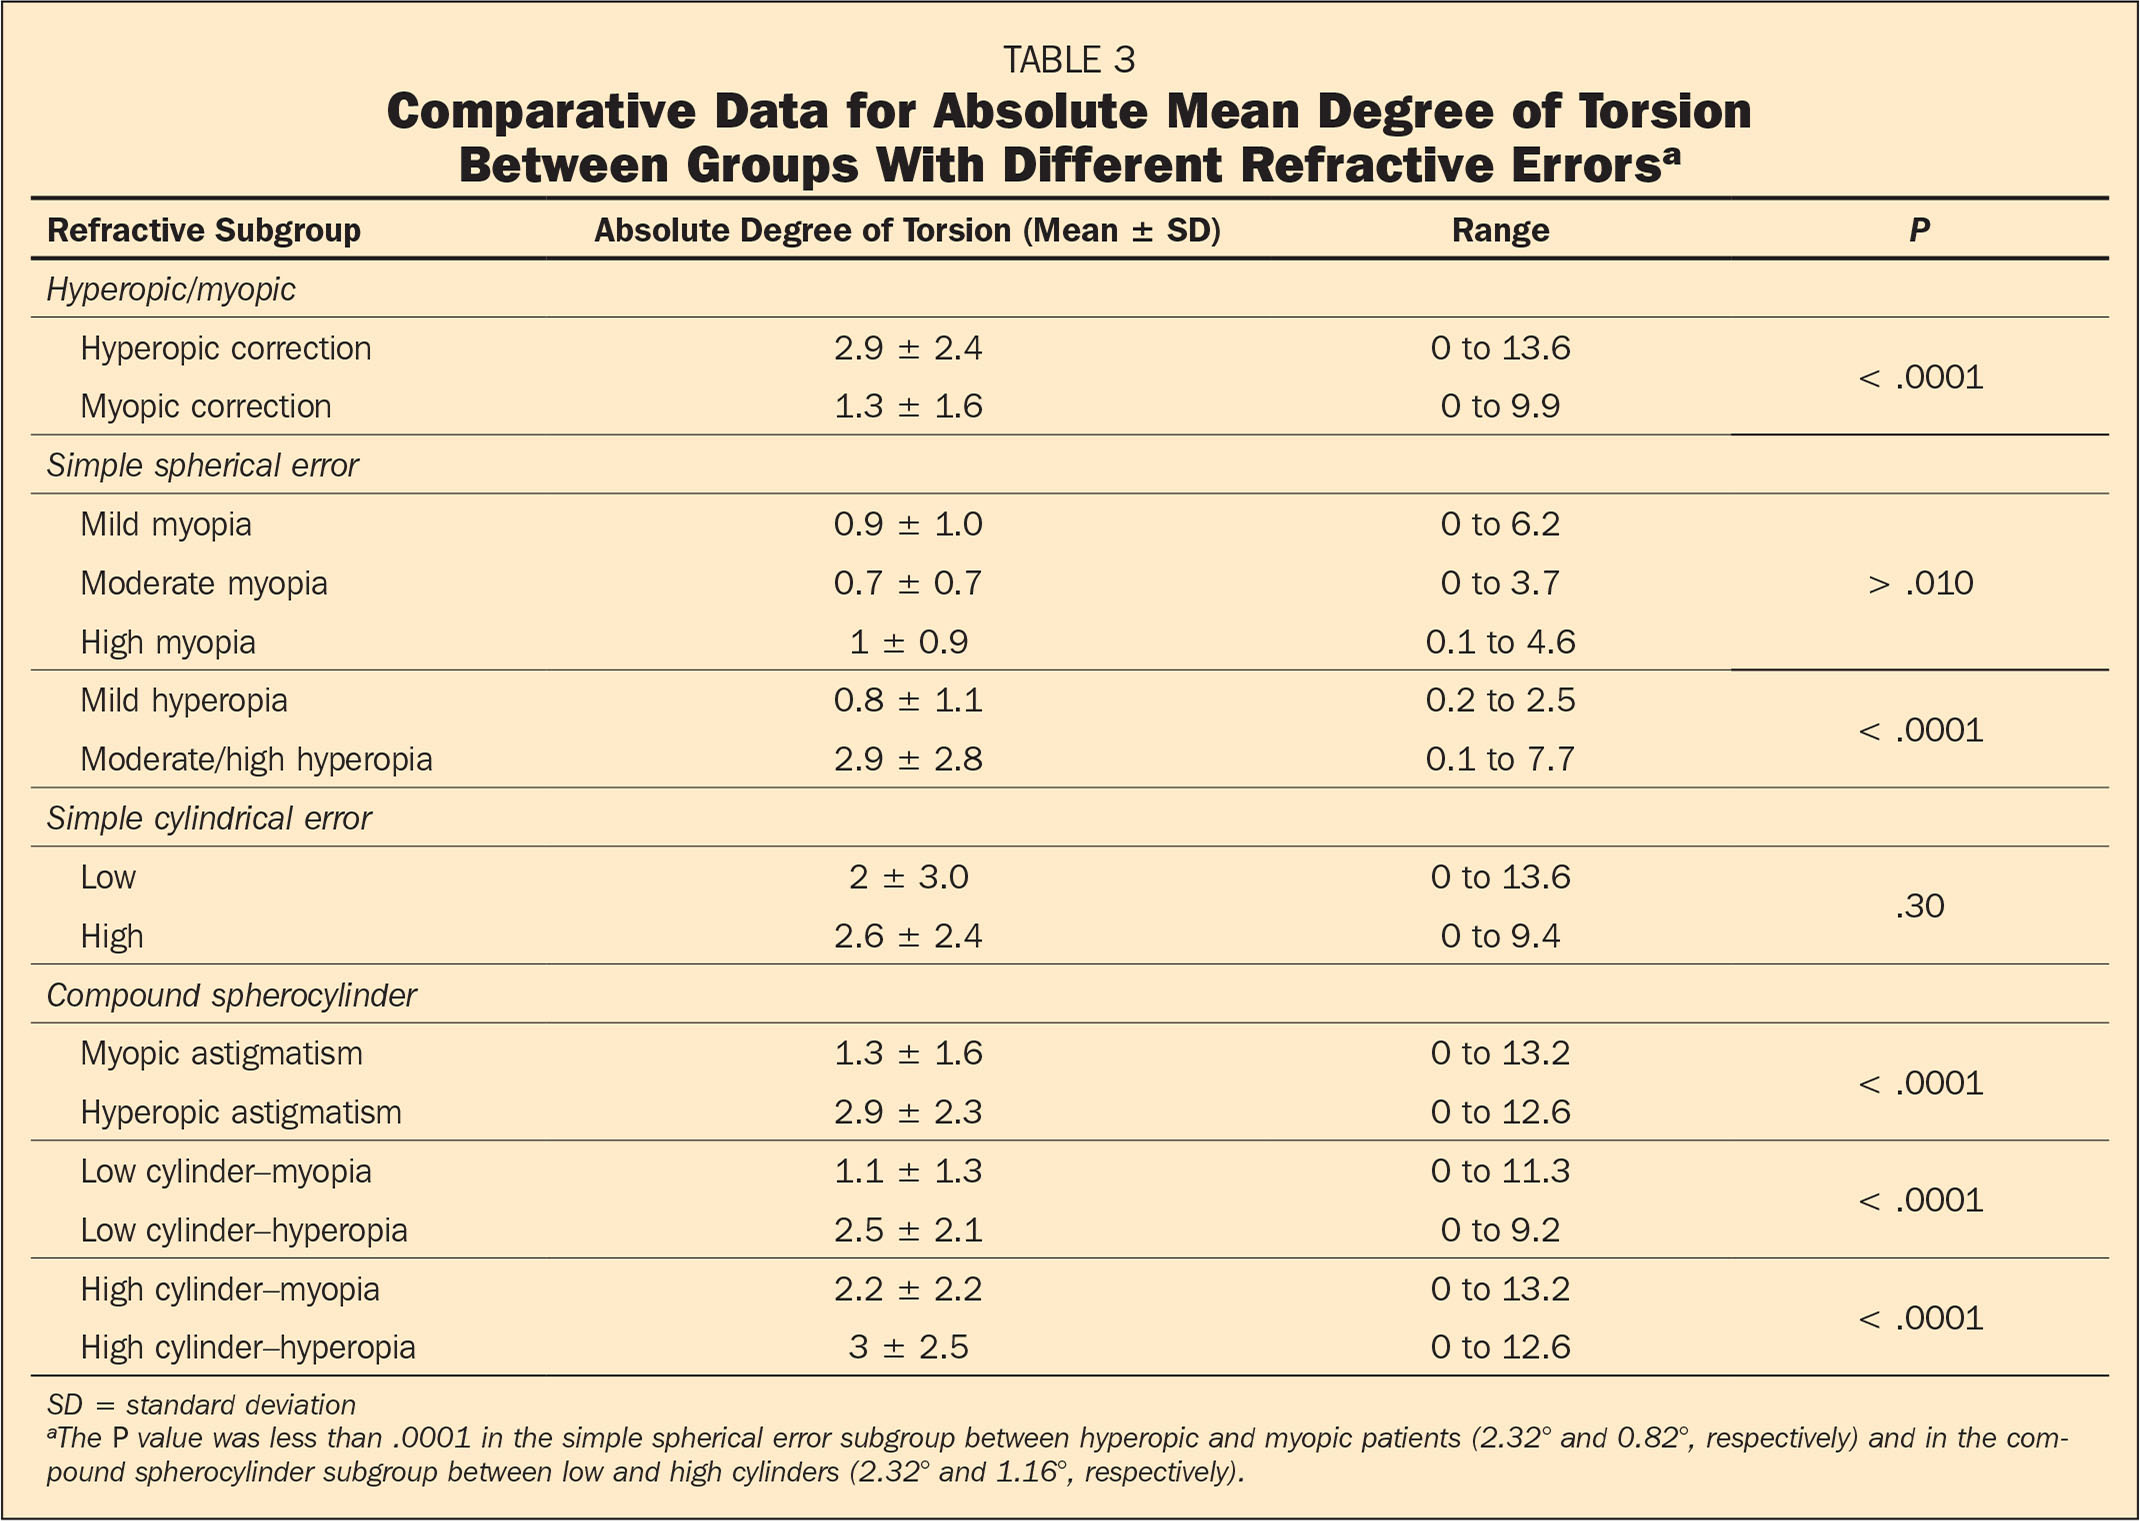 Comparative Data for Absolute Mean Degree of Torsion Between Groups With Different Refractive Errorsa